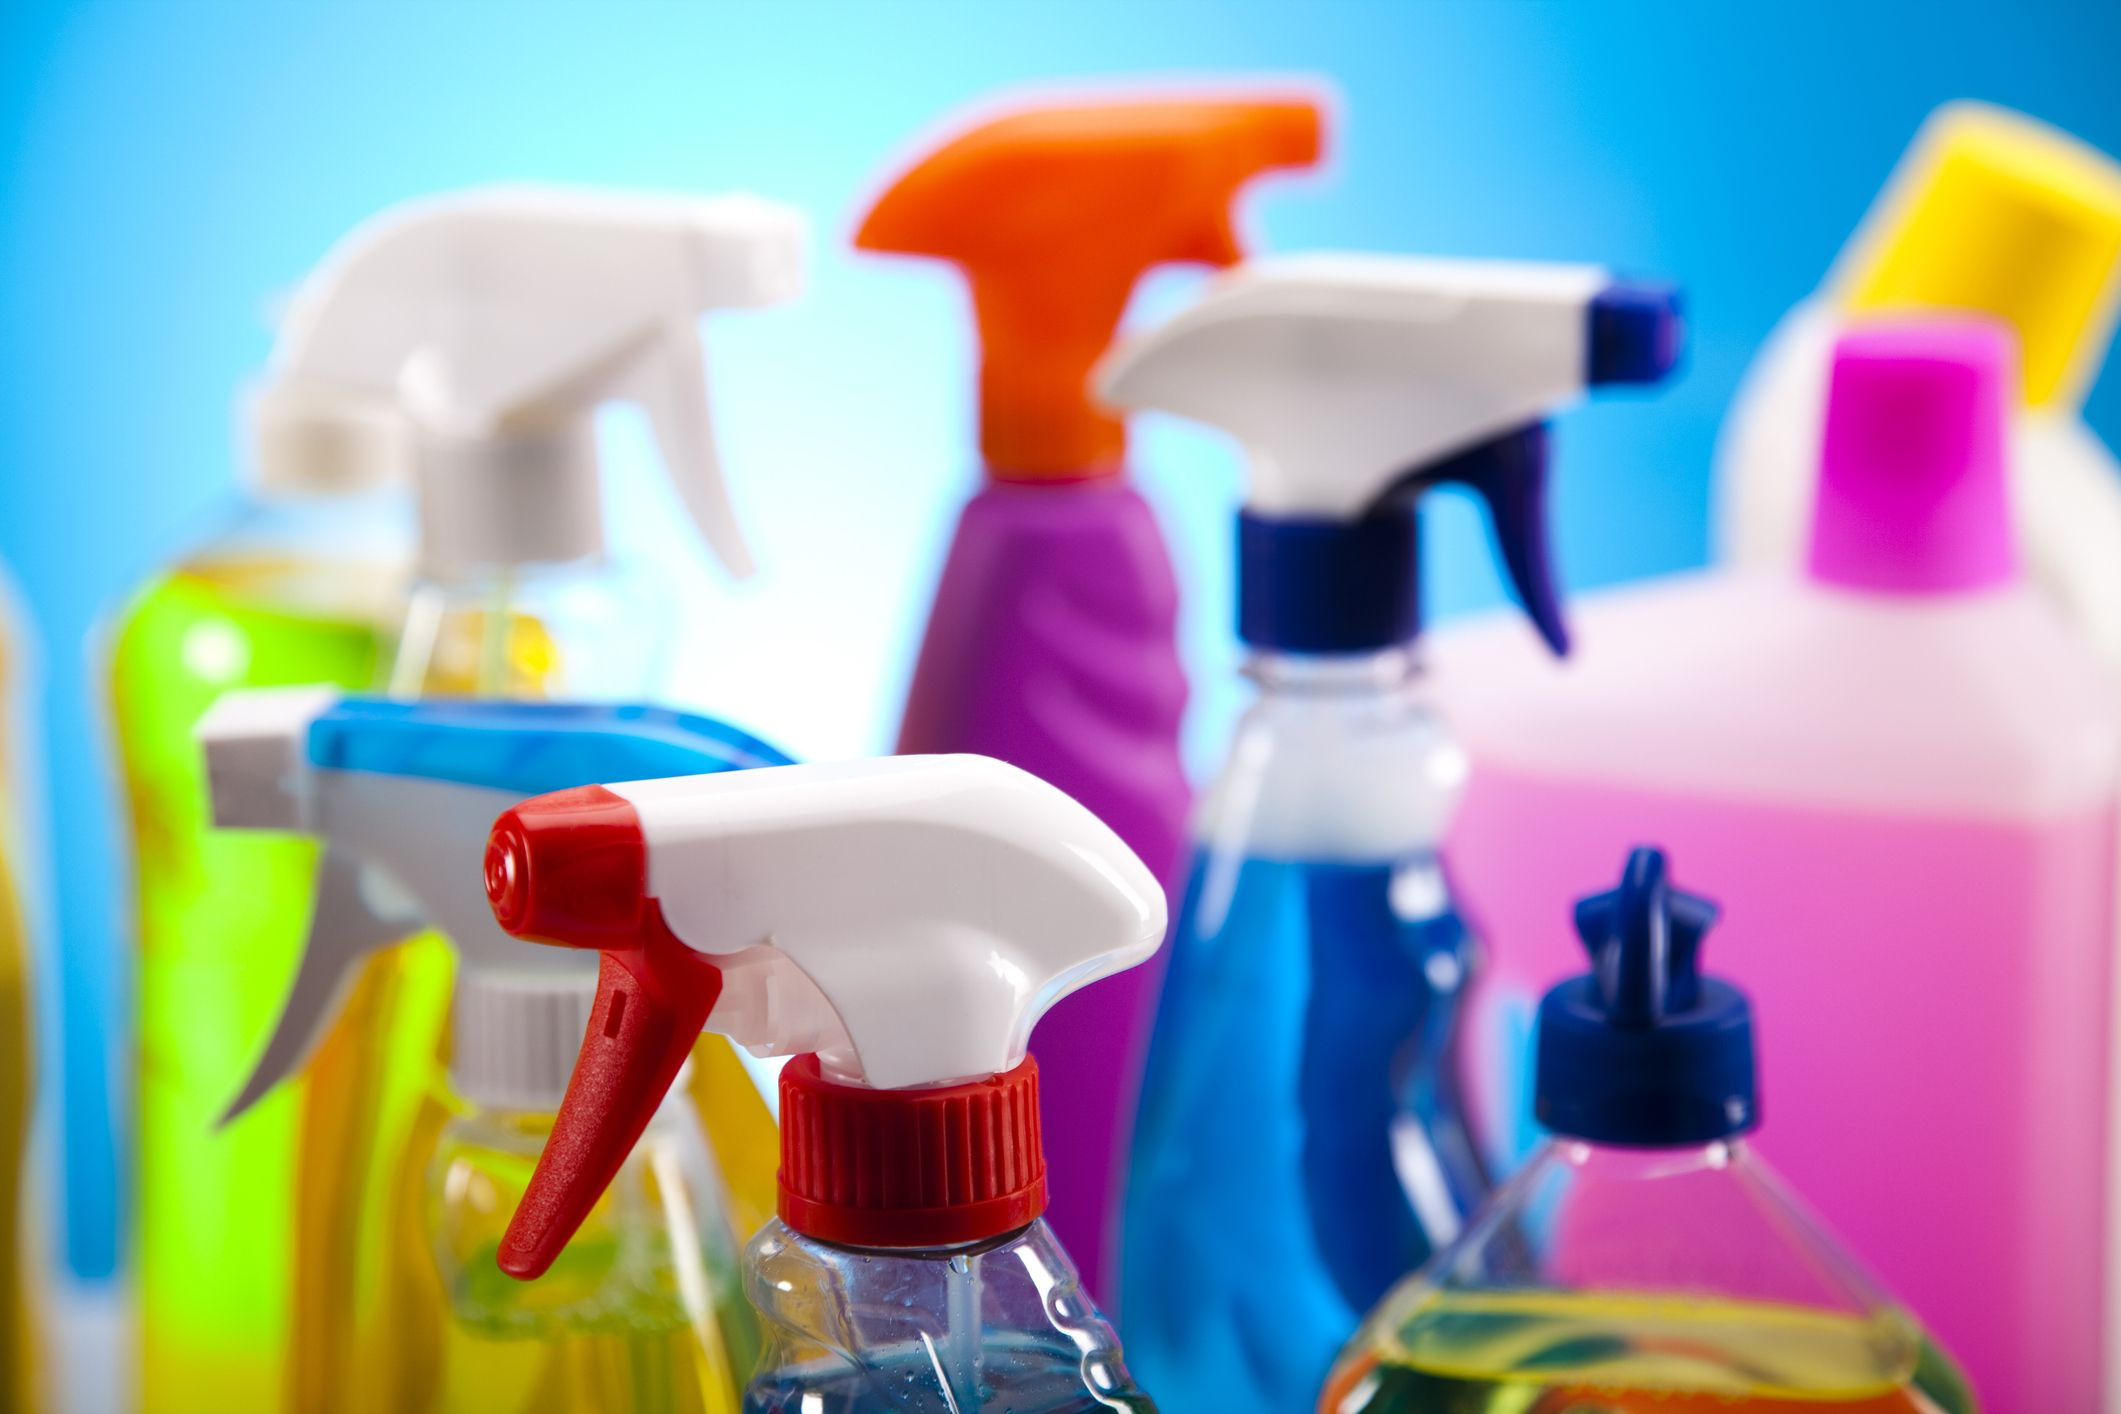 Household Disinfectants Could Be Making >> Household Cleaning Products Might Be Making Your Children Fat